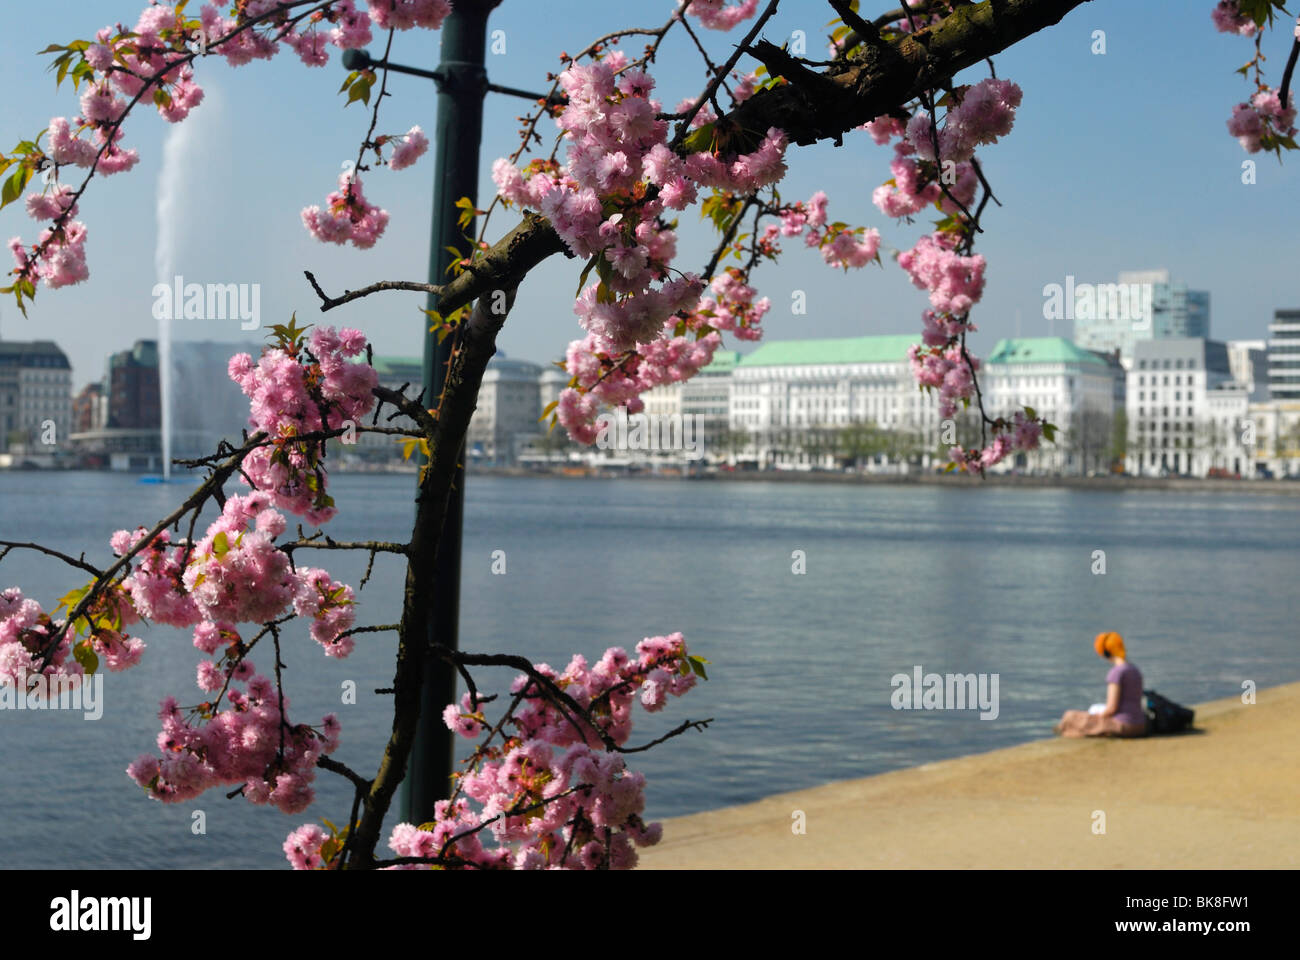 Spring blossom at the Inner Alster Lake in Hamburg, Germany, Europe - Stock Image